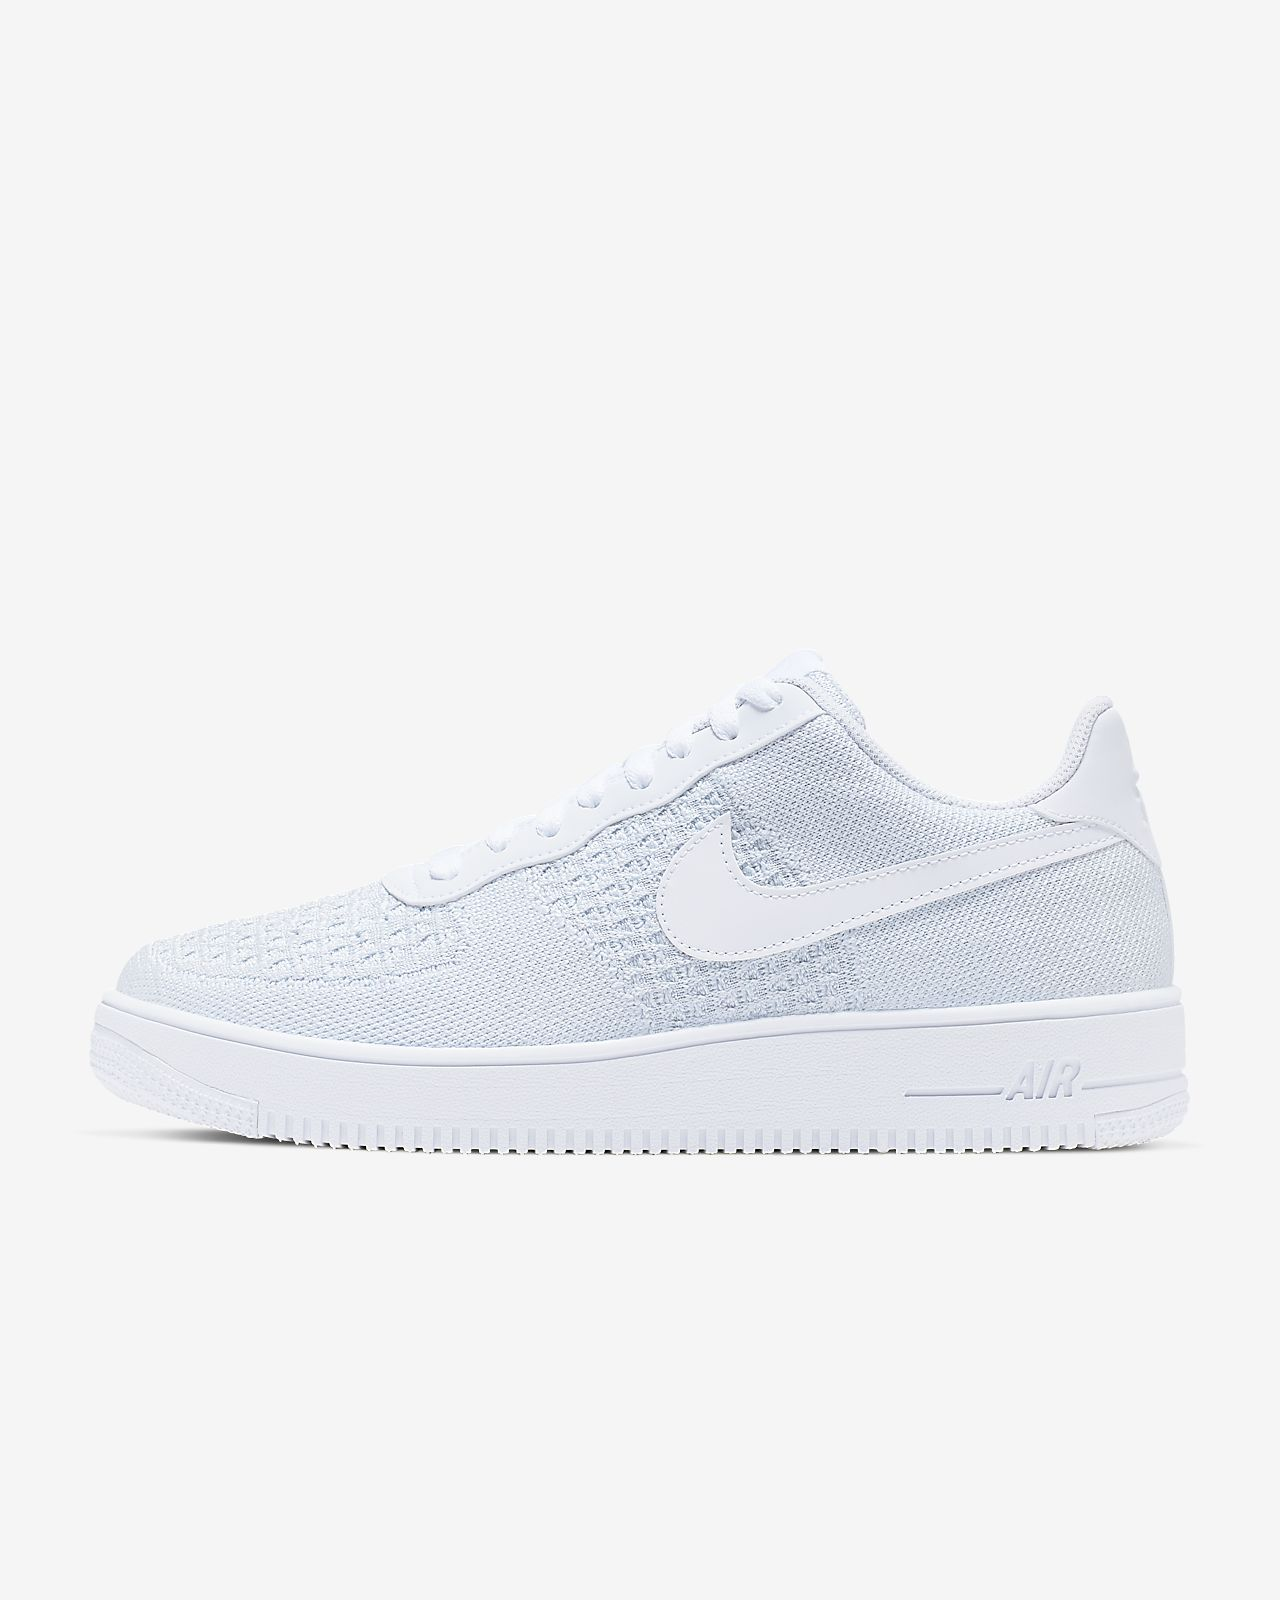 Nike Air Force 1 Flyknit 2.0 Shoe